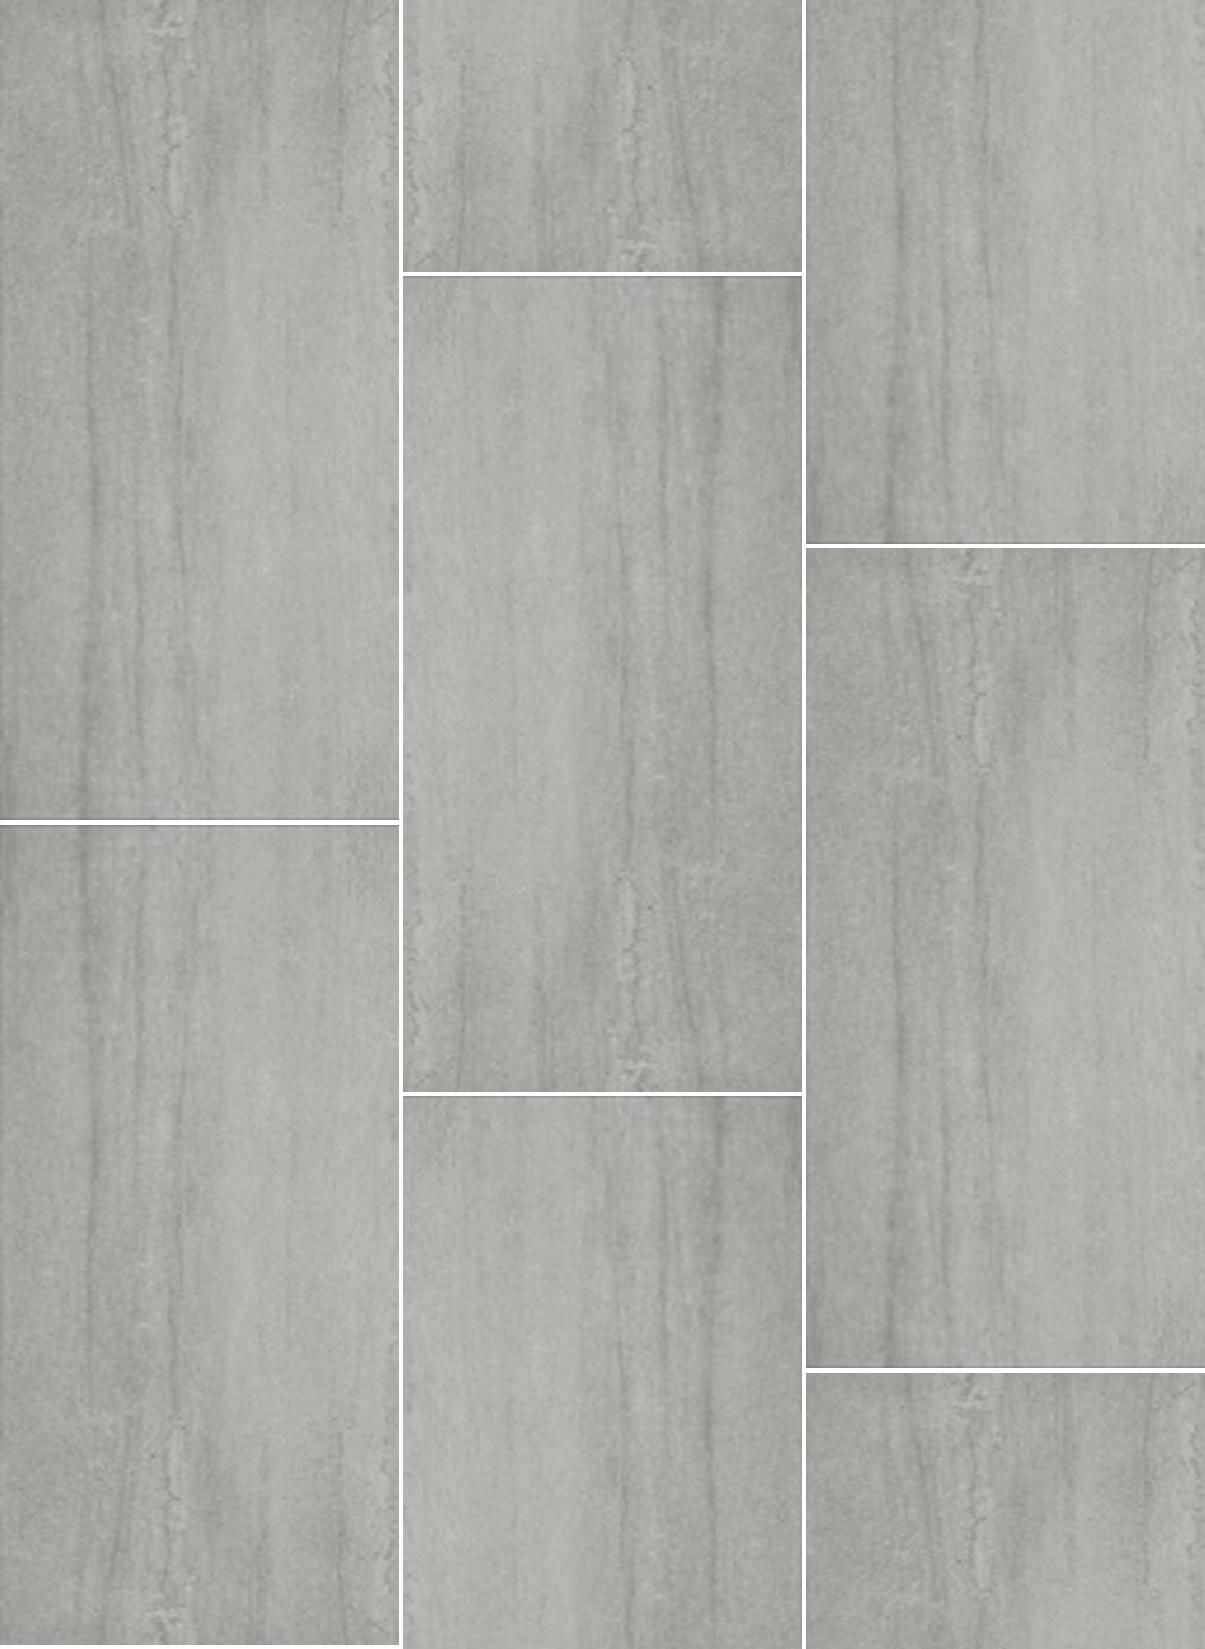 floor tiles clad grey a herringbone floors pattern tile ceramic in